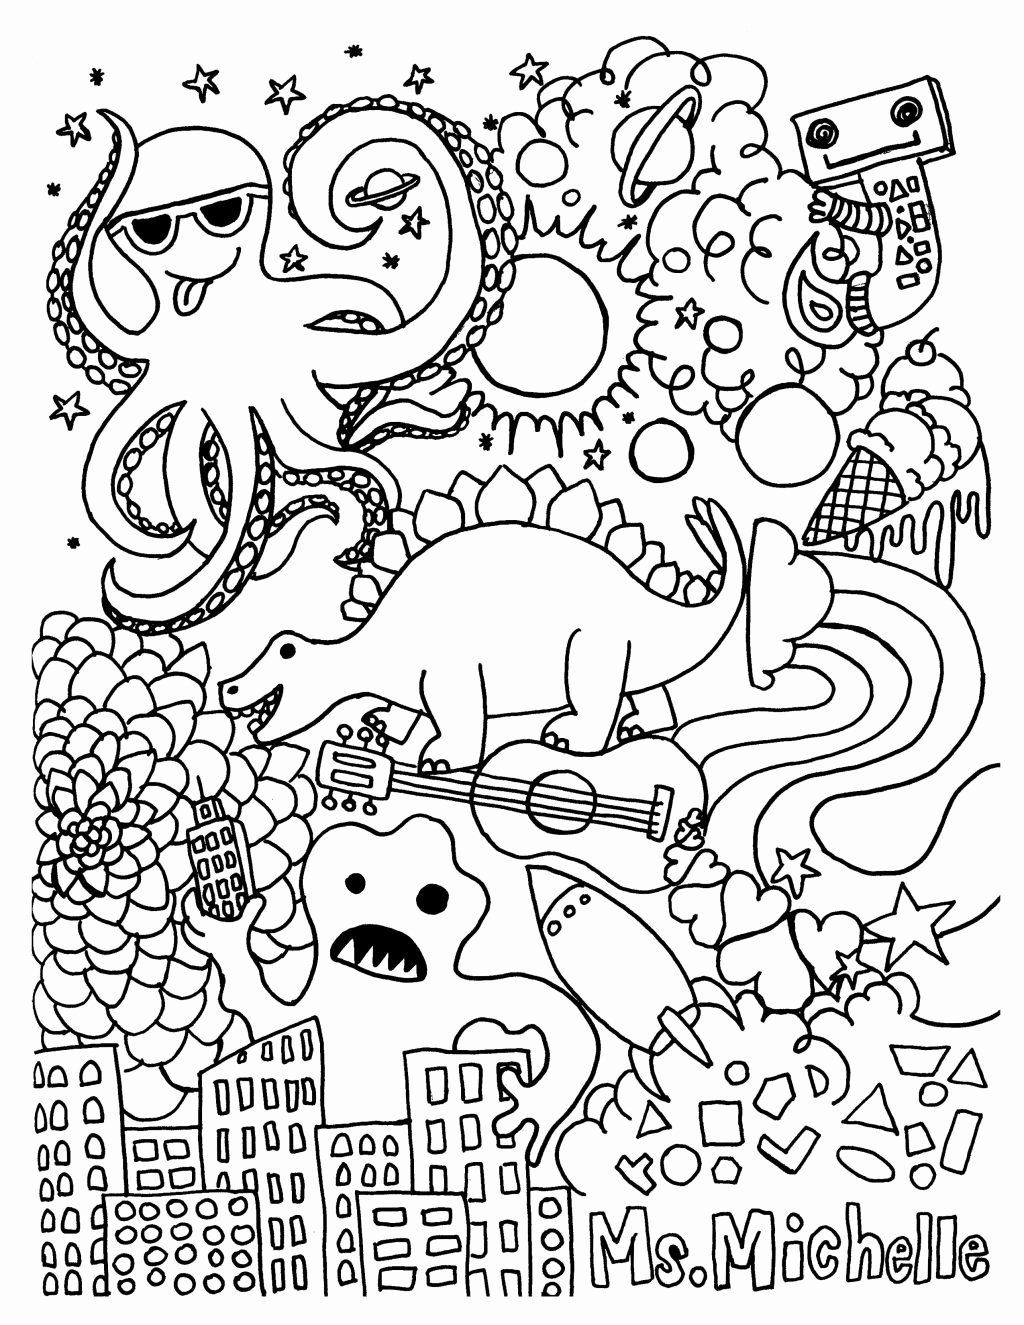 Nature Coloring Book Pdf Lovely Free Spring Coloring Pages Tag 43 Awesome Spring Coloring Valentine Coloring Pages Flag Coloring Pages Alphabet Coloring Pages